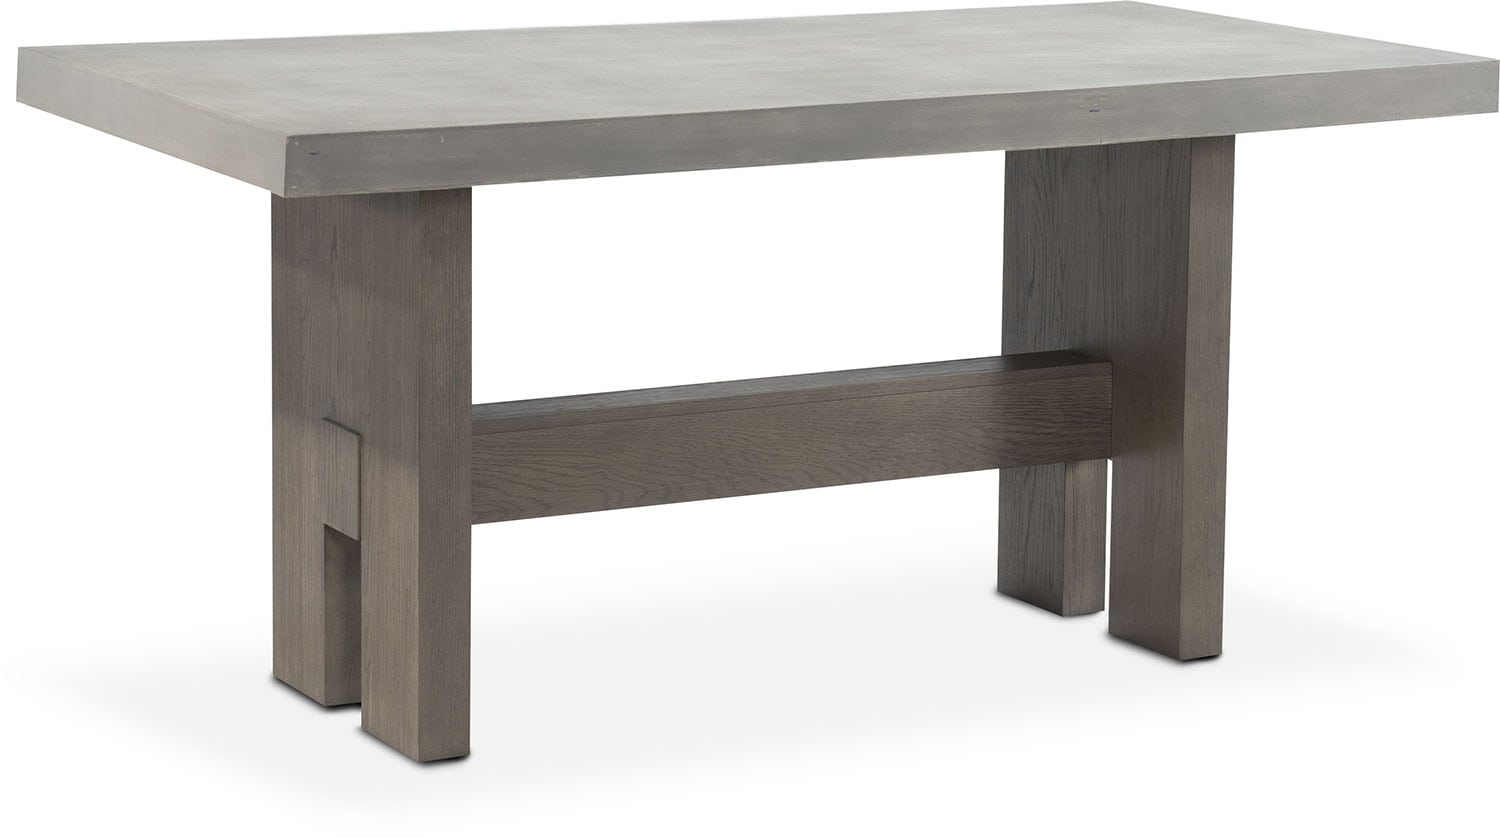 Malibu Rectangular Counter Height Concrete Top Table   Gray